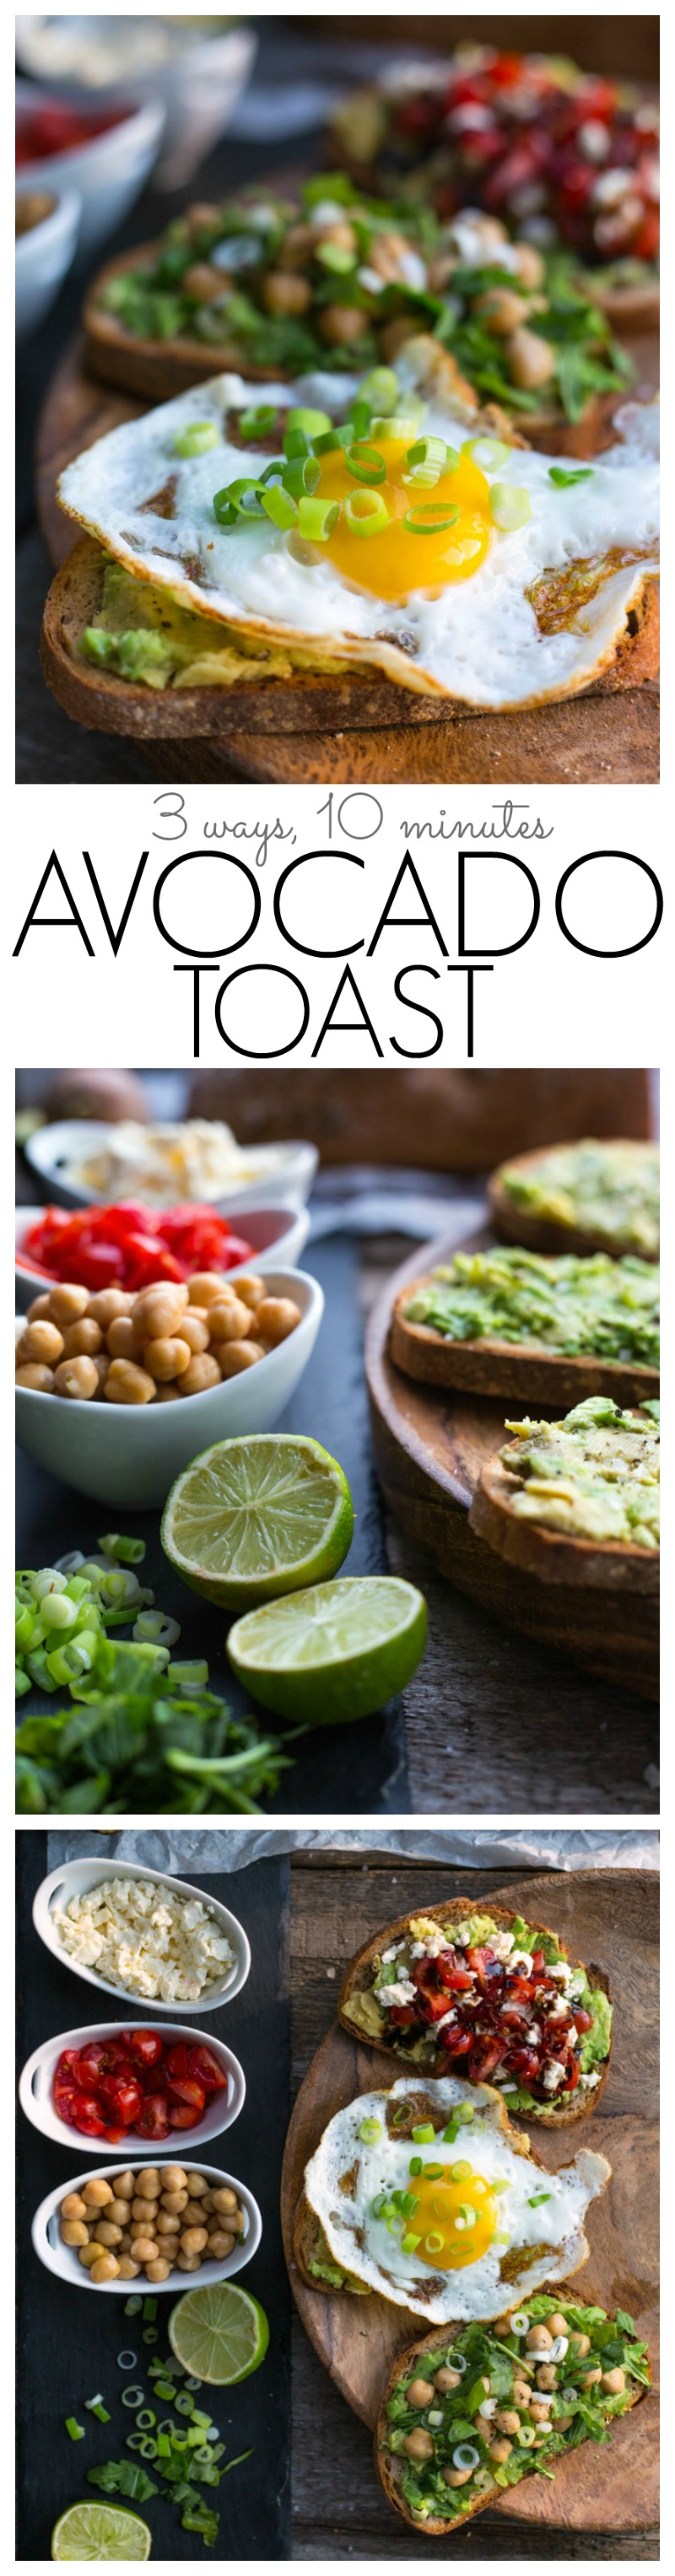 Short in time but still in need of a healthy meal? This Avocado Toast recipe is delicious and nutritious and includes 3 different options - Ready in 10 min!